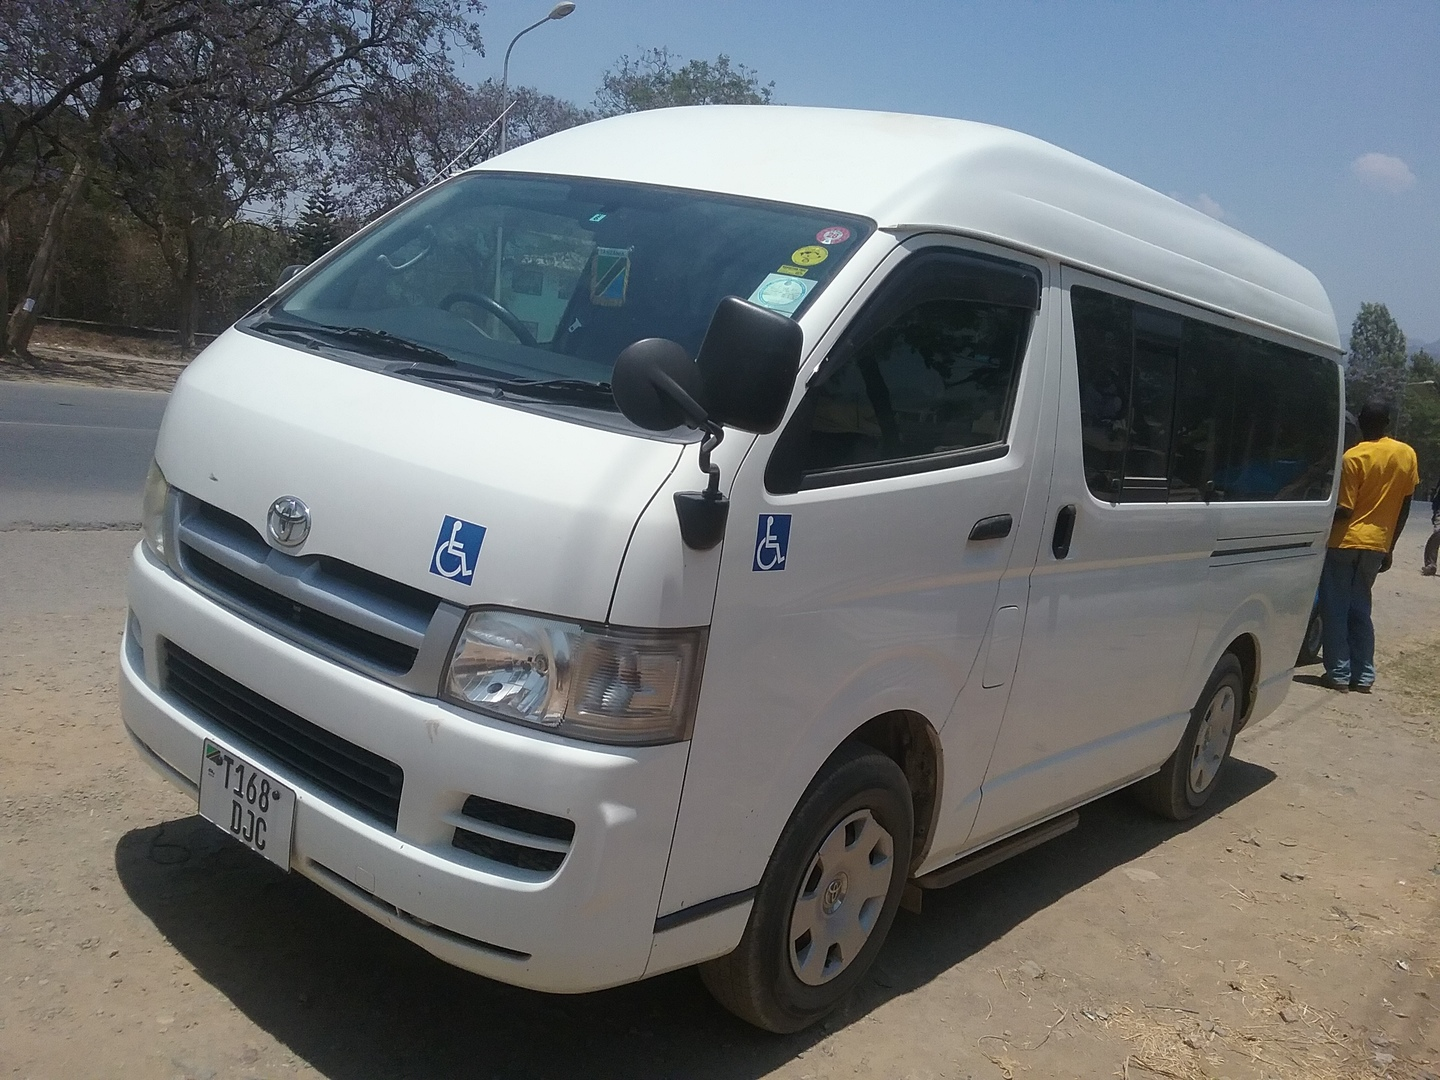 Toyota HiAce Van Review - BE FORWARD